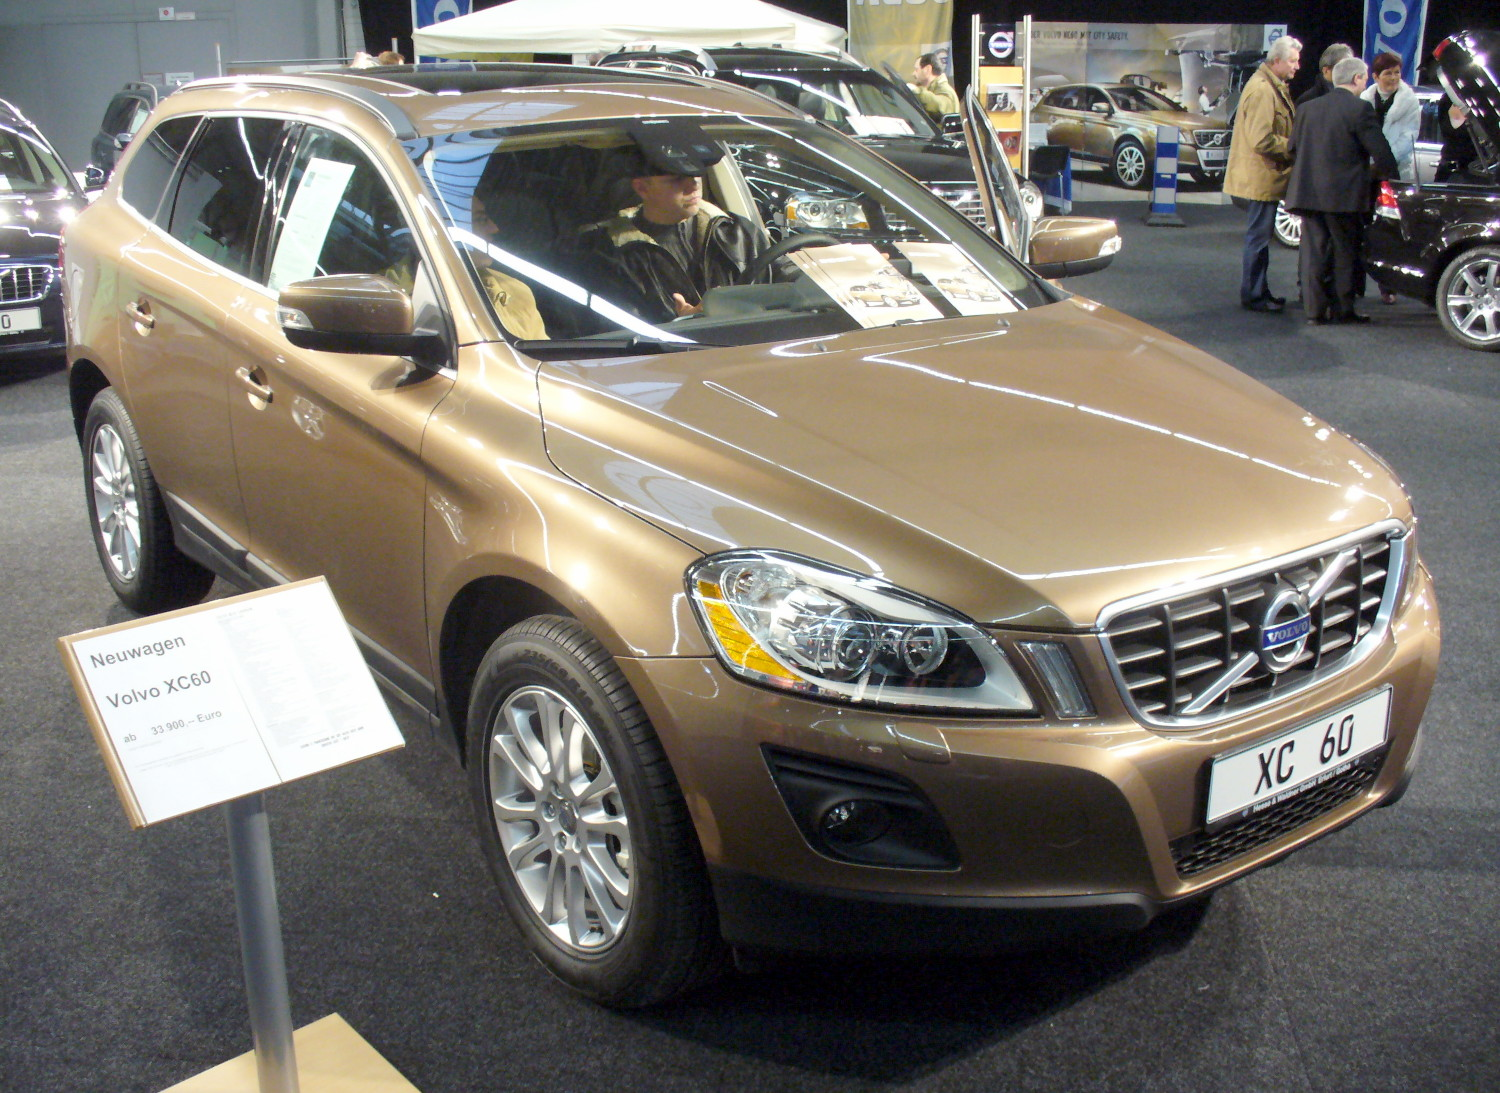 file volvo xc60 d5 awd jpg wikimedia commons. Black Bedroom Furniture Sets. Home Design Ideas